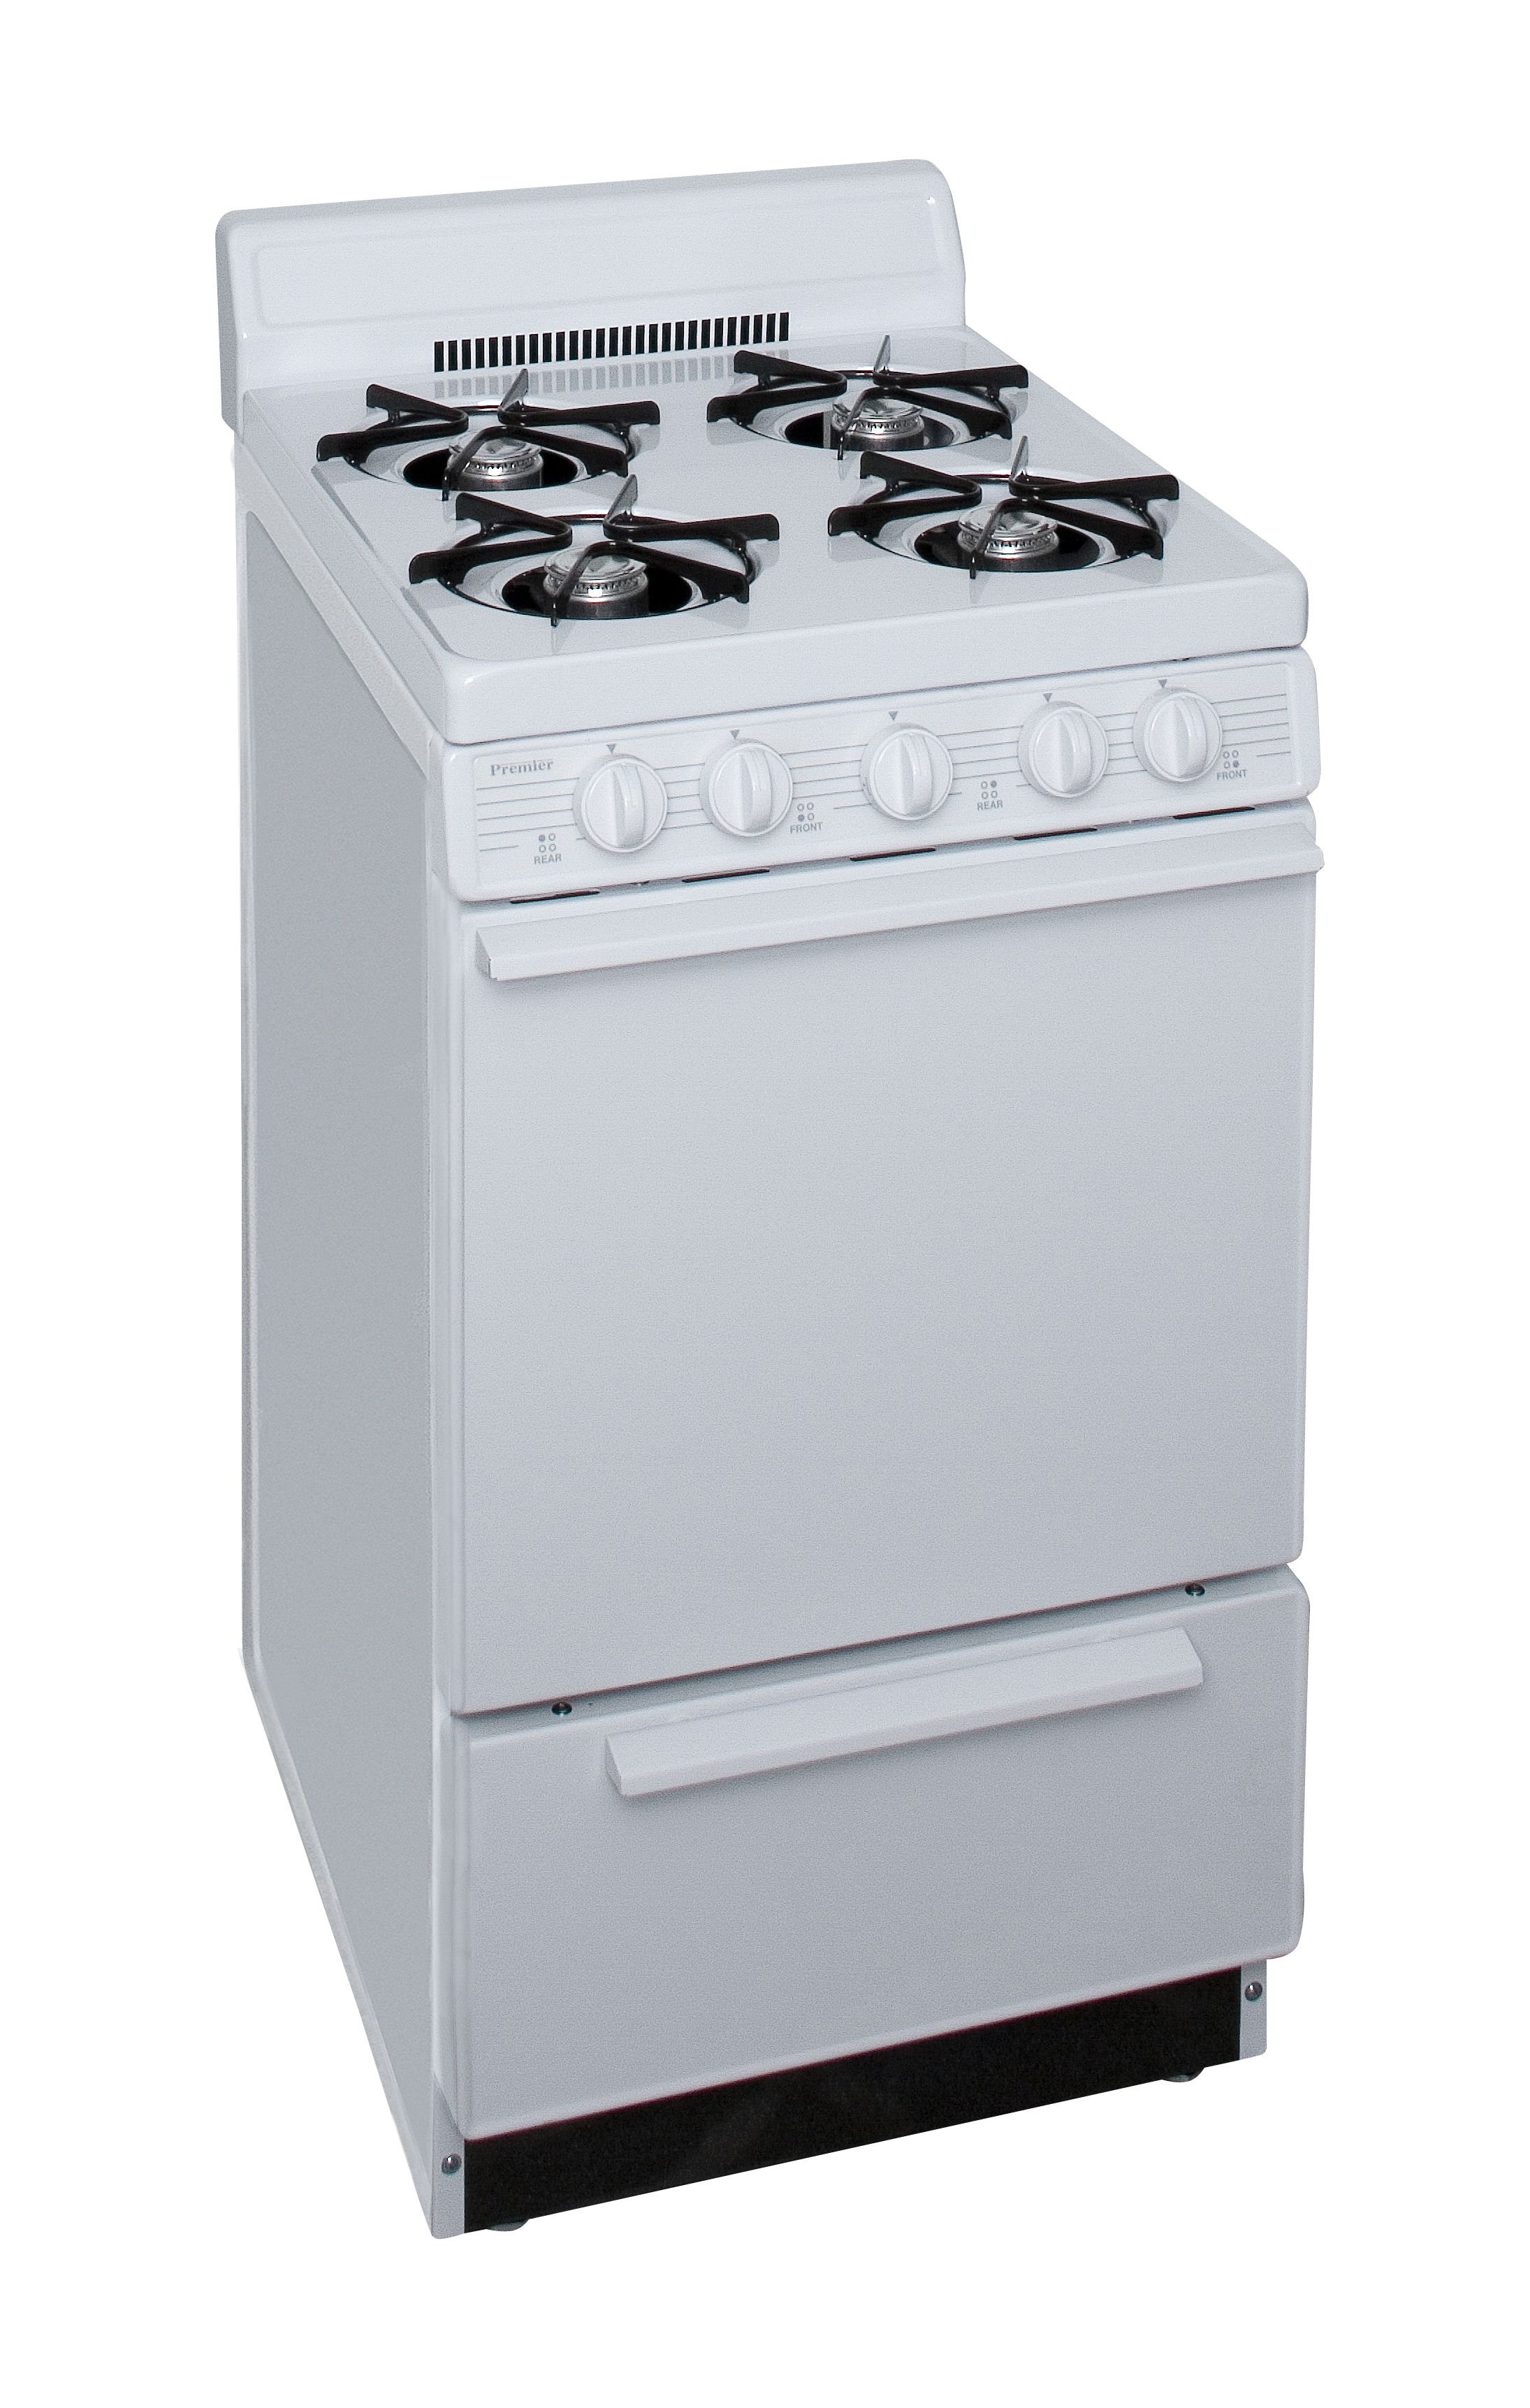 which peerless premier gas stove model has the options you want